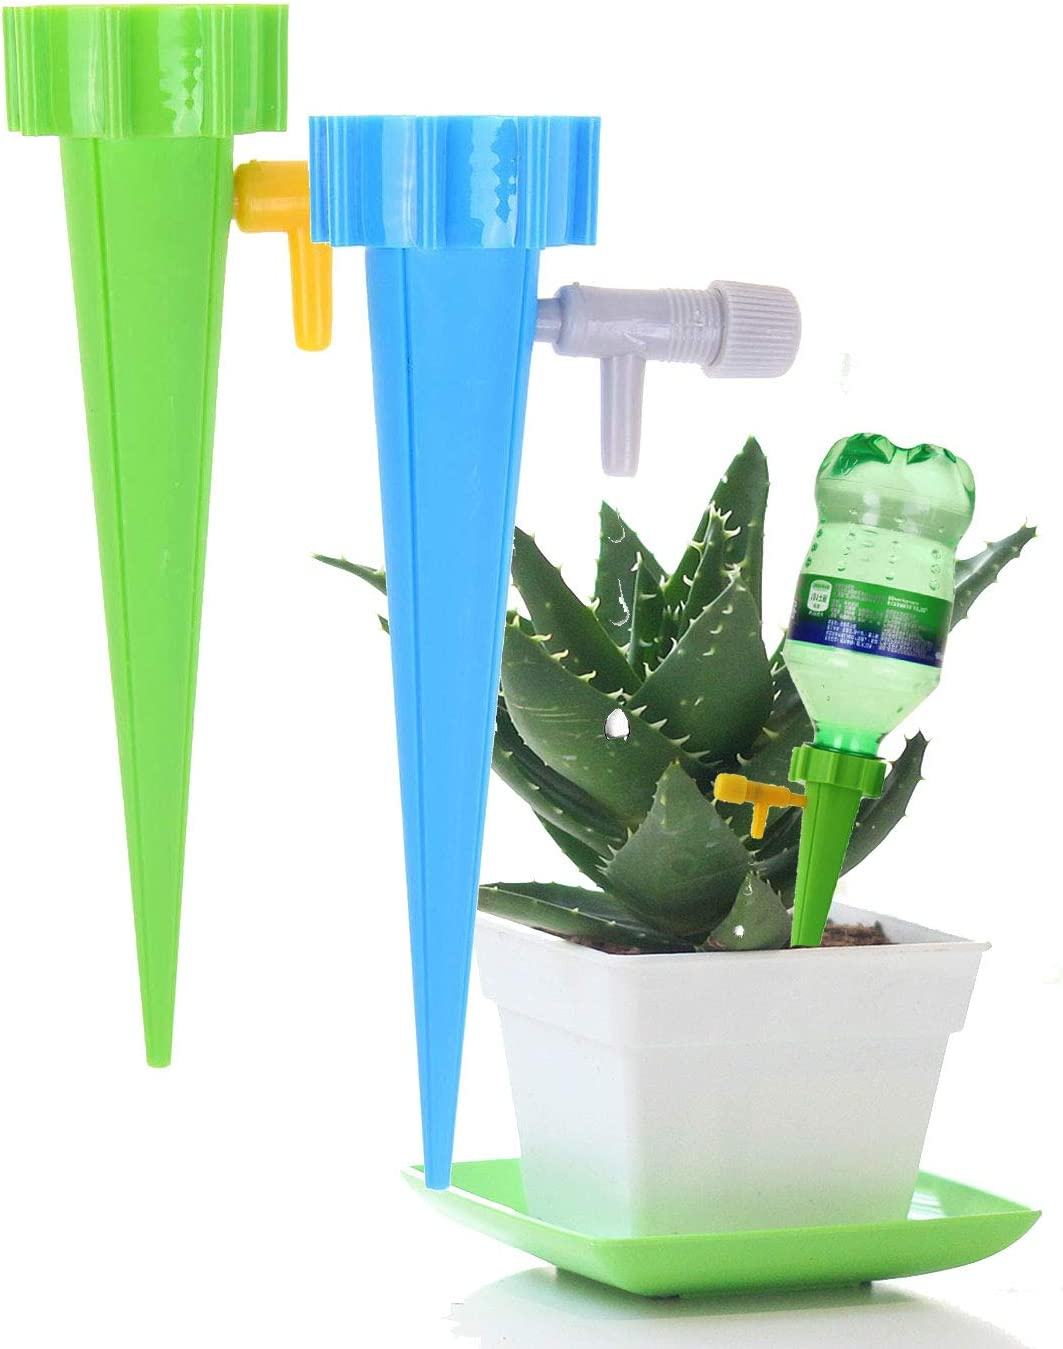 12 PCS Self Watering Spikes,V-Resourcing Adjustable Water Volume Drip System,Automatic Watering Devices with Control Valve Switch for Garden Plants Indoor & Outdoor